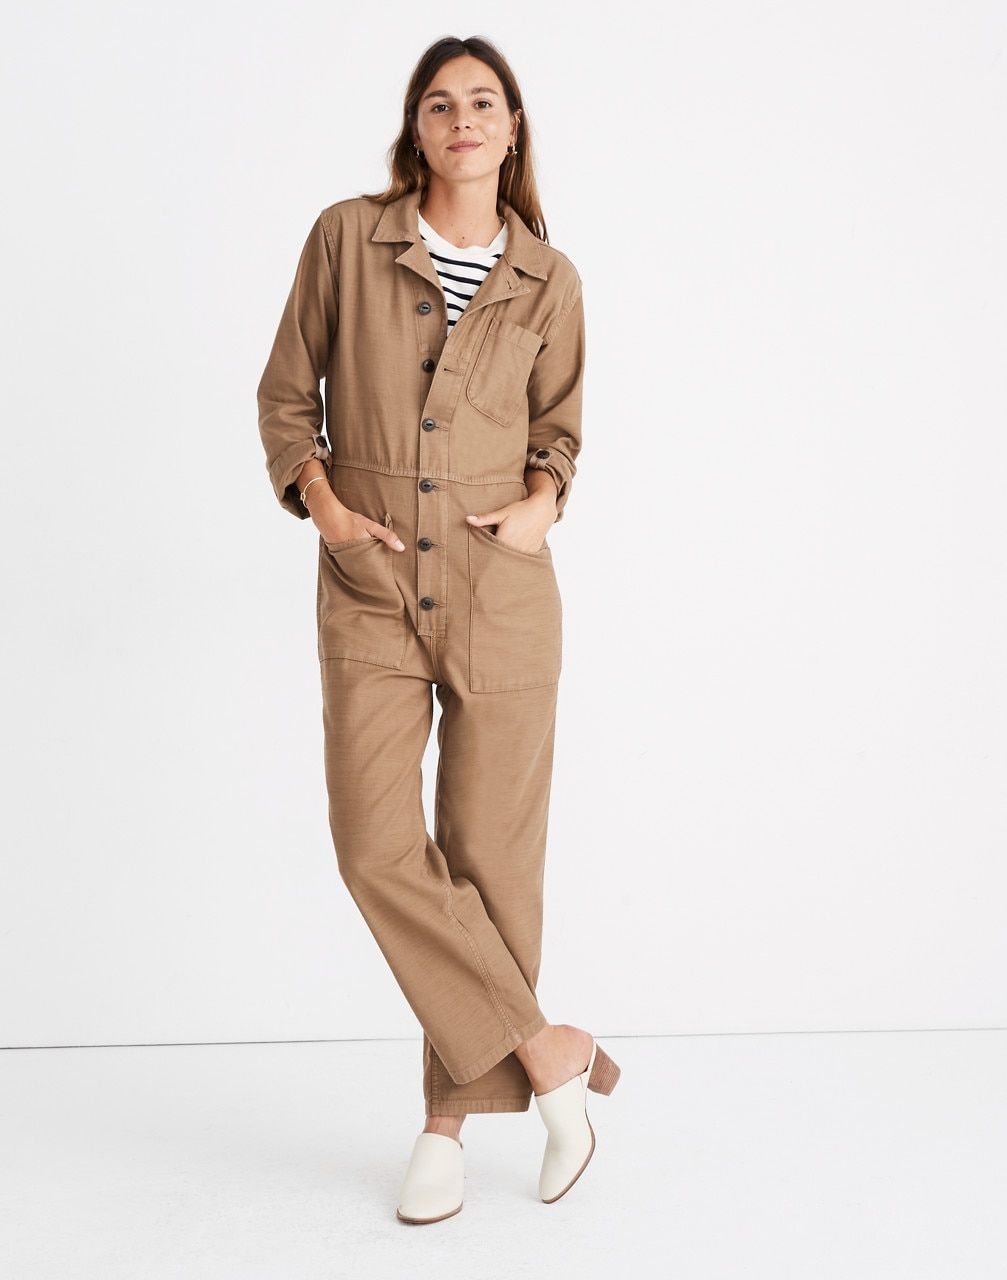 4f2524c61f8 Madewell x As Ever™ Coveralls in weathered olive image 2